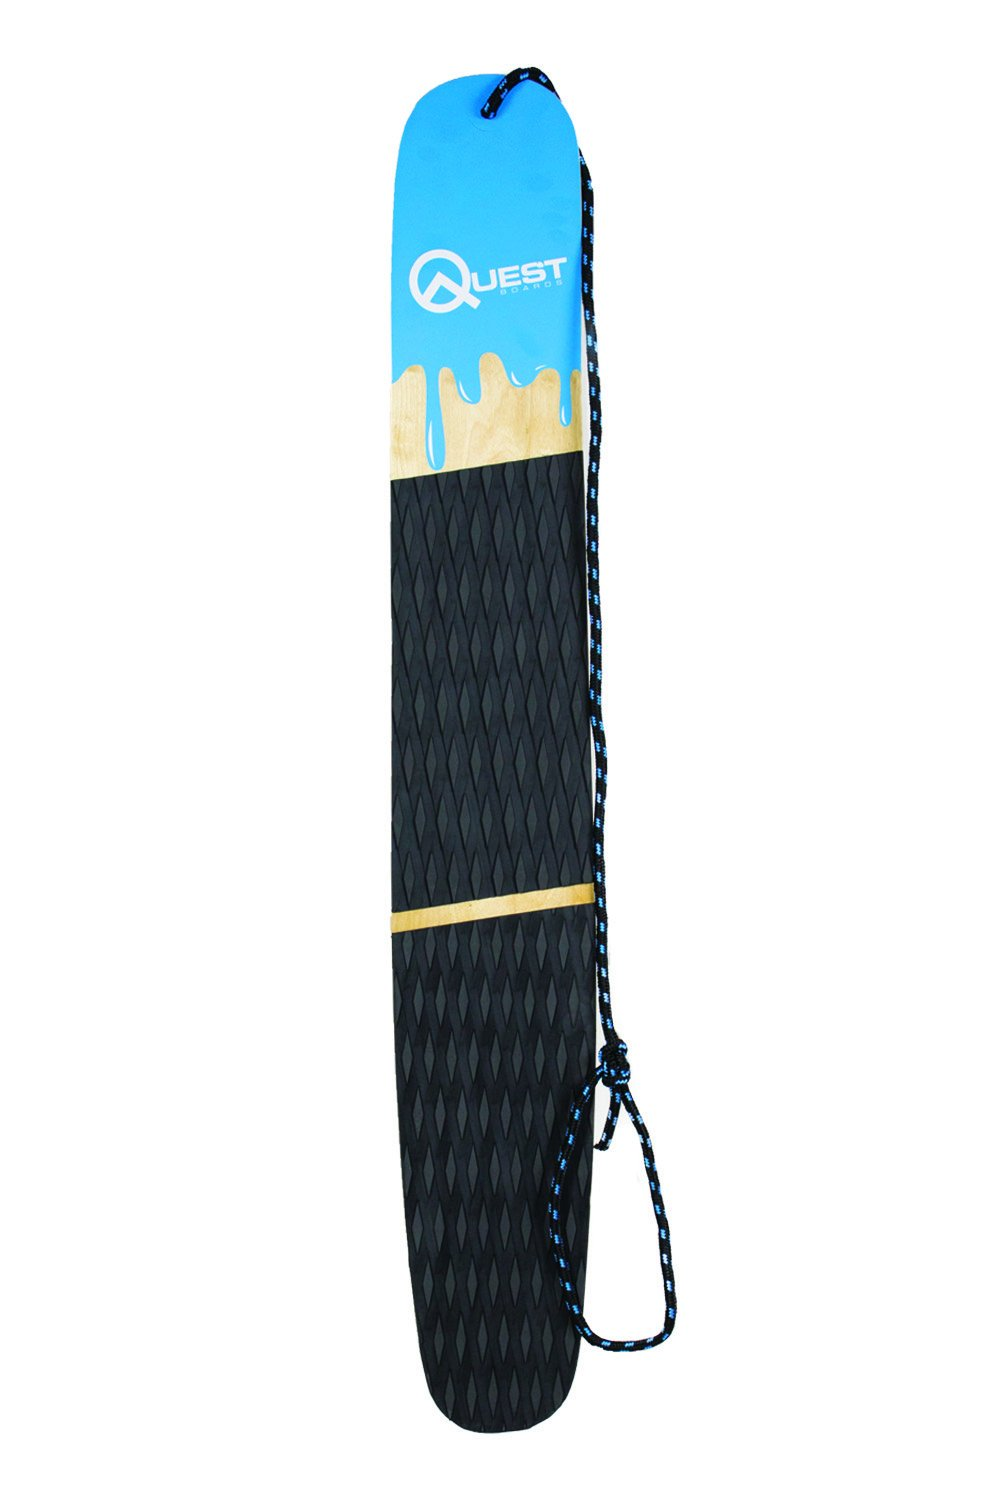 Quest SnoSk8 Board, 48''